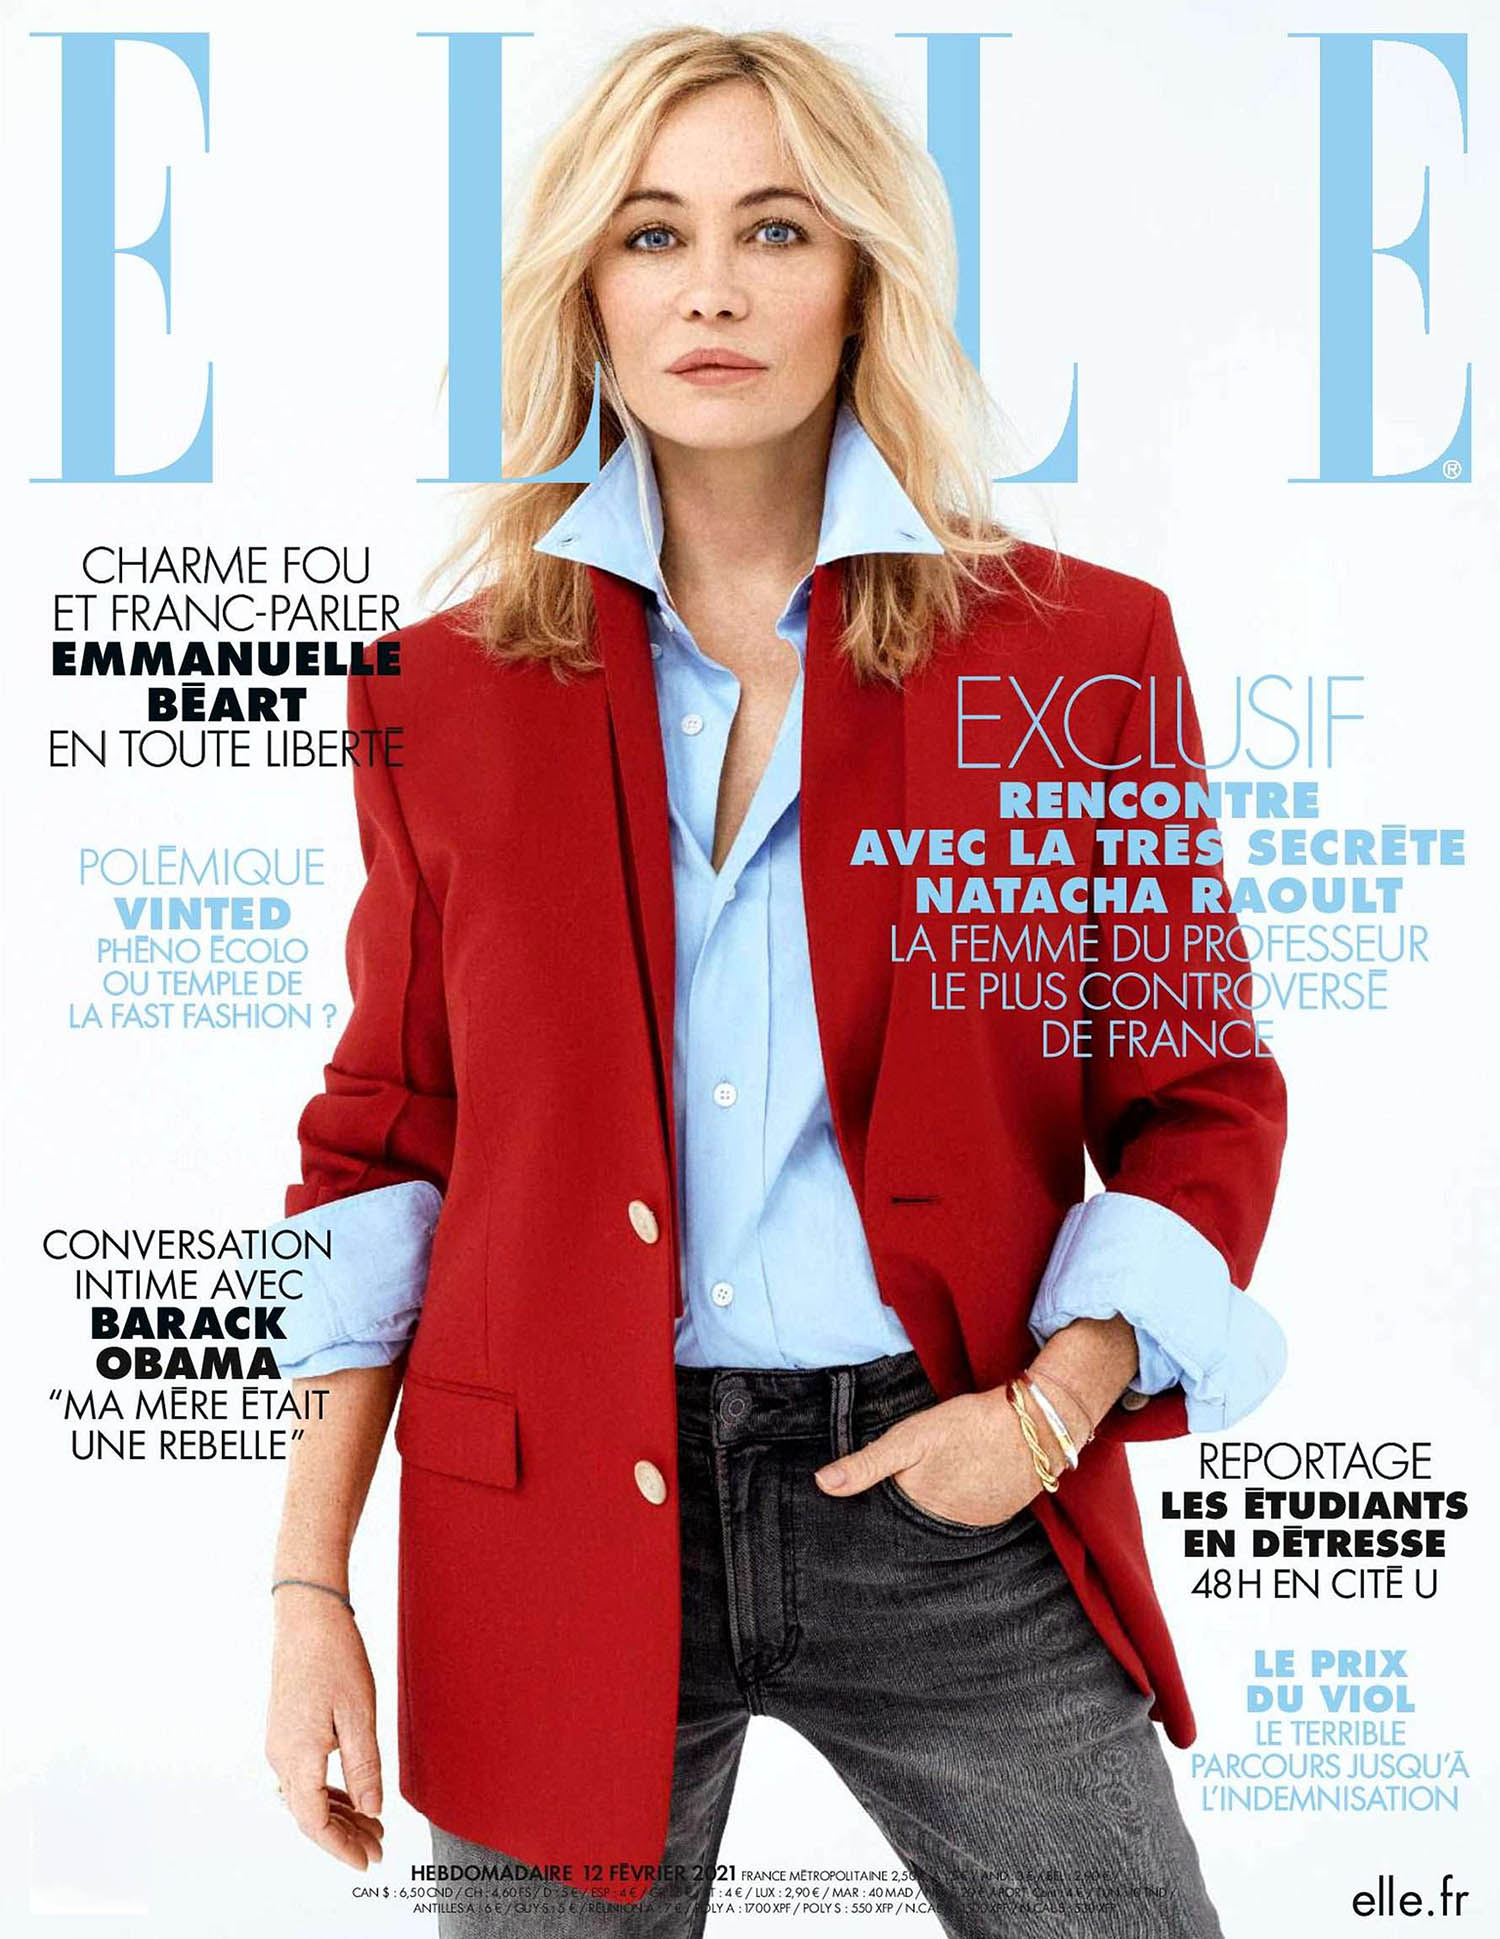 Emmanuelle Béart covers Elle France February 12th, 2021 by Dant Studio